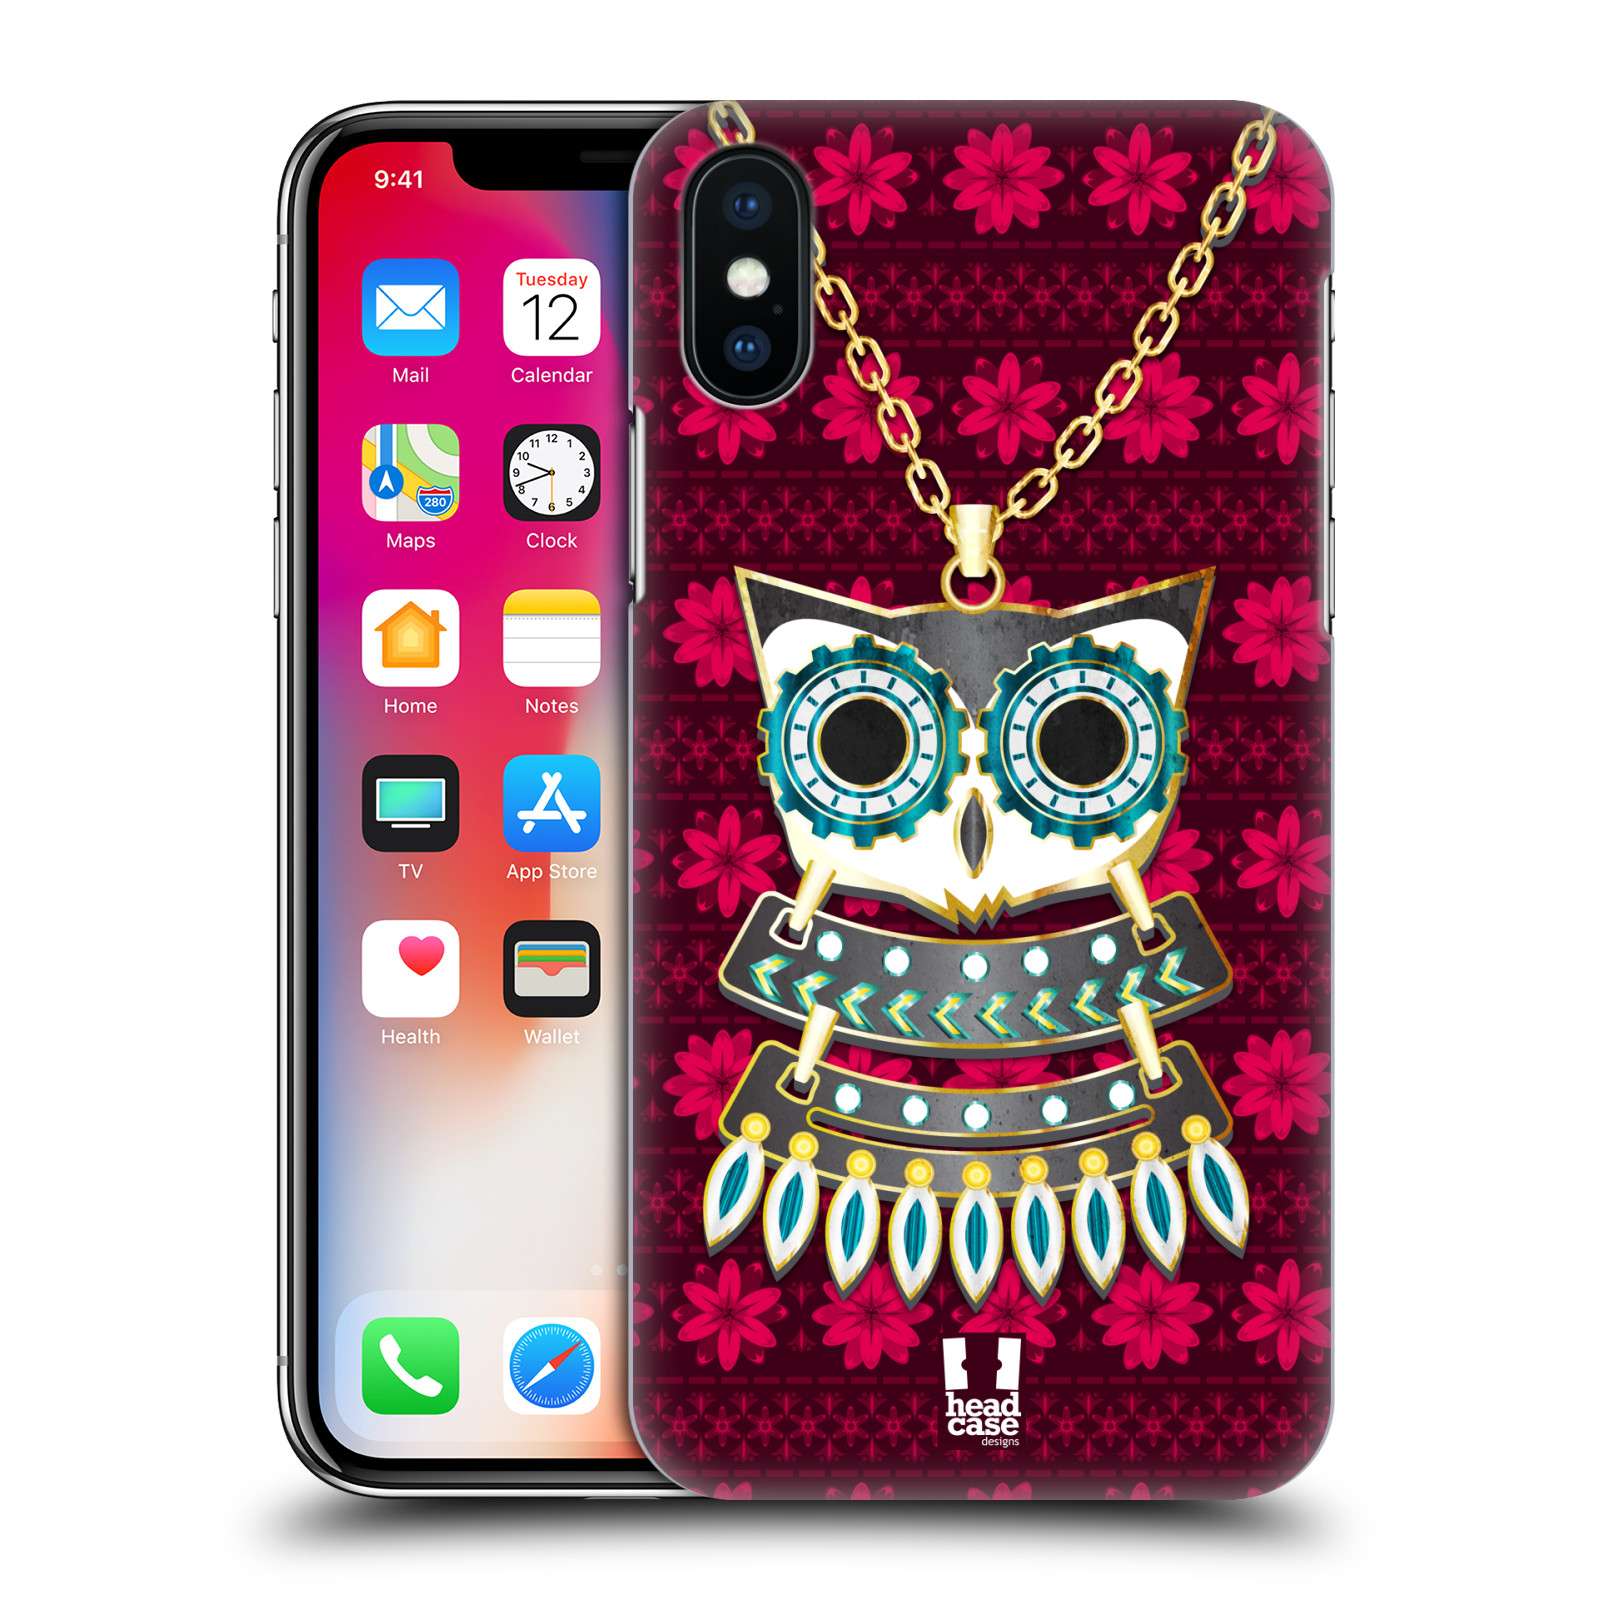 HEAD-CASE-DESIGNS-TENDANCES-DE-HIBOU-ETUI-COQUE-D-039-ARRIERE-POUR-APPLE-iPHONE-X